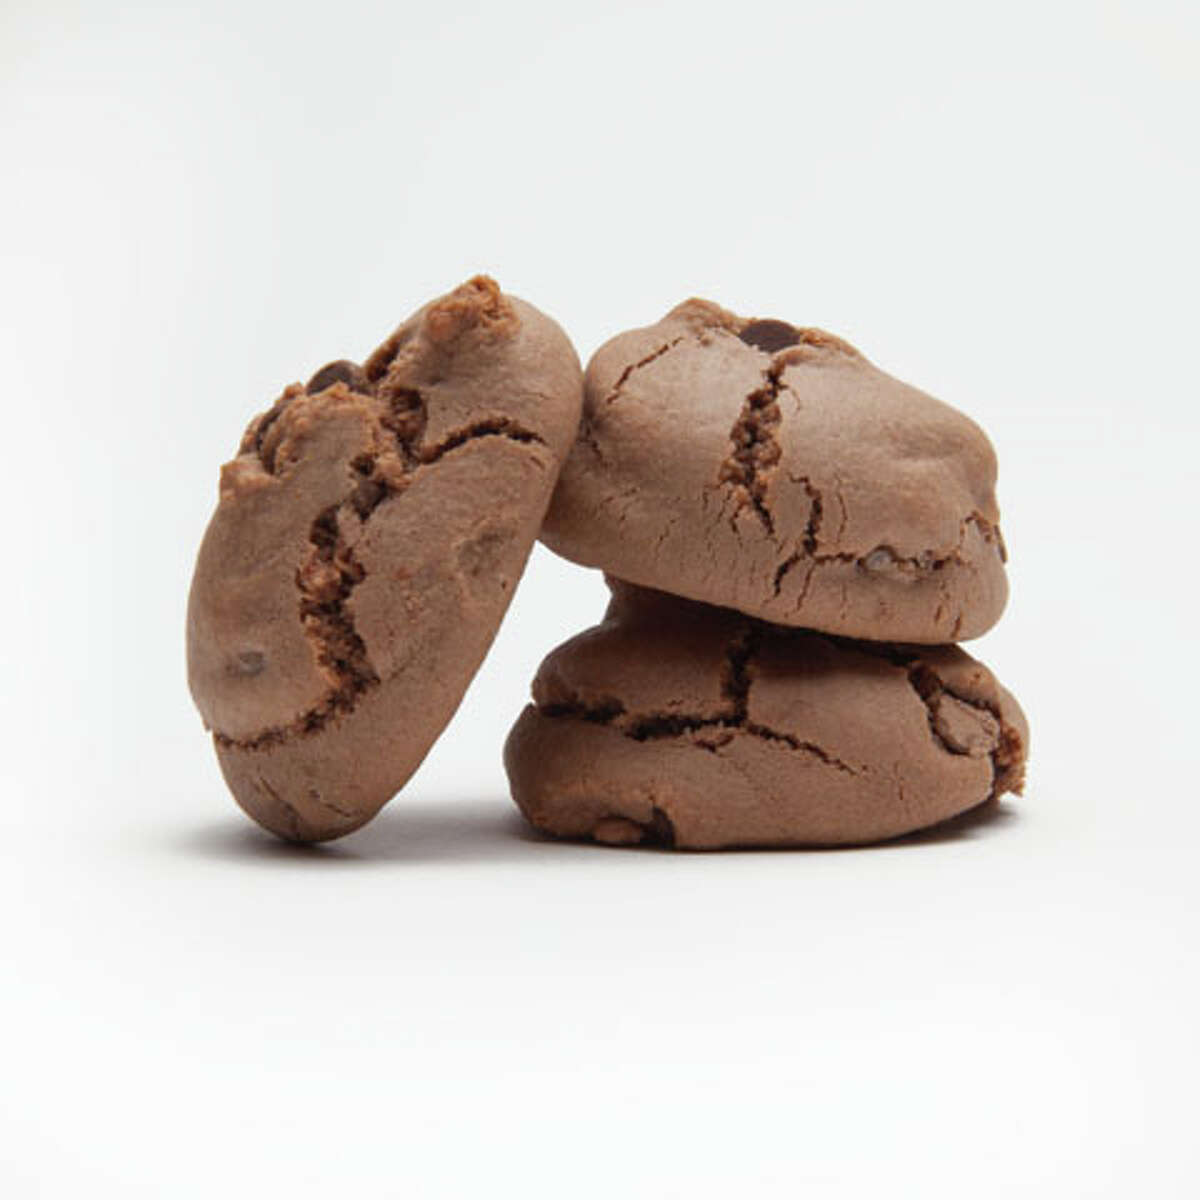 These Sustainable Indulgence Chocolate Chipster cookies are sold through Wilton-based Direct Eats.